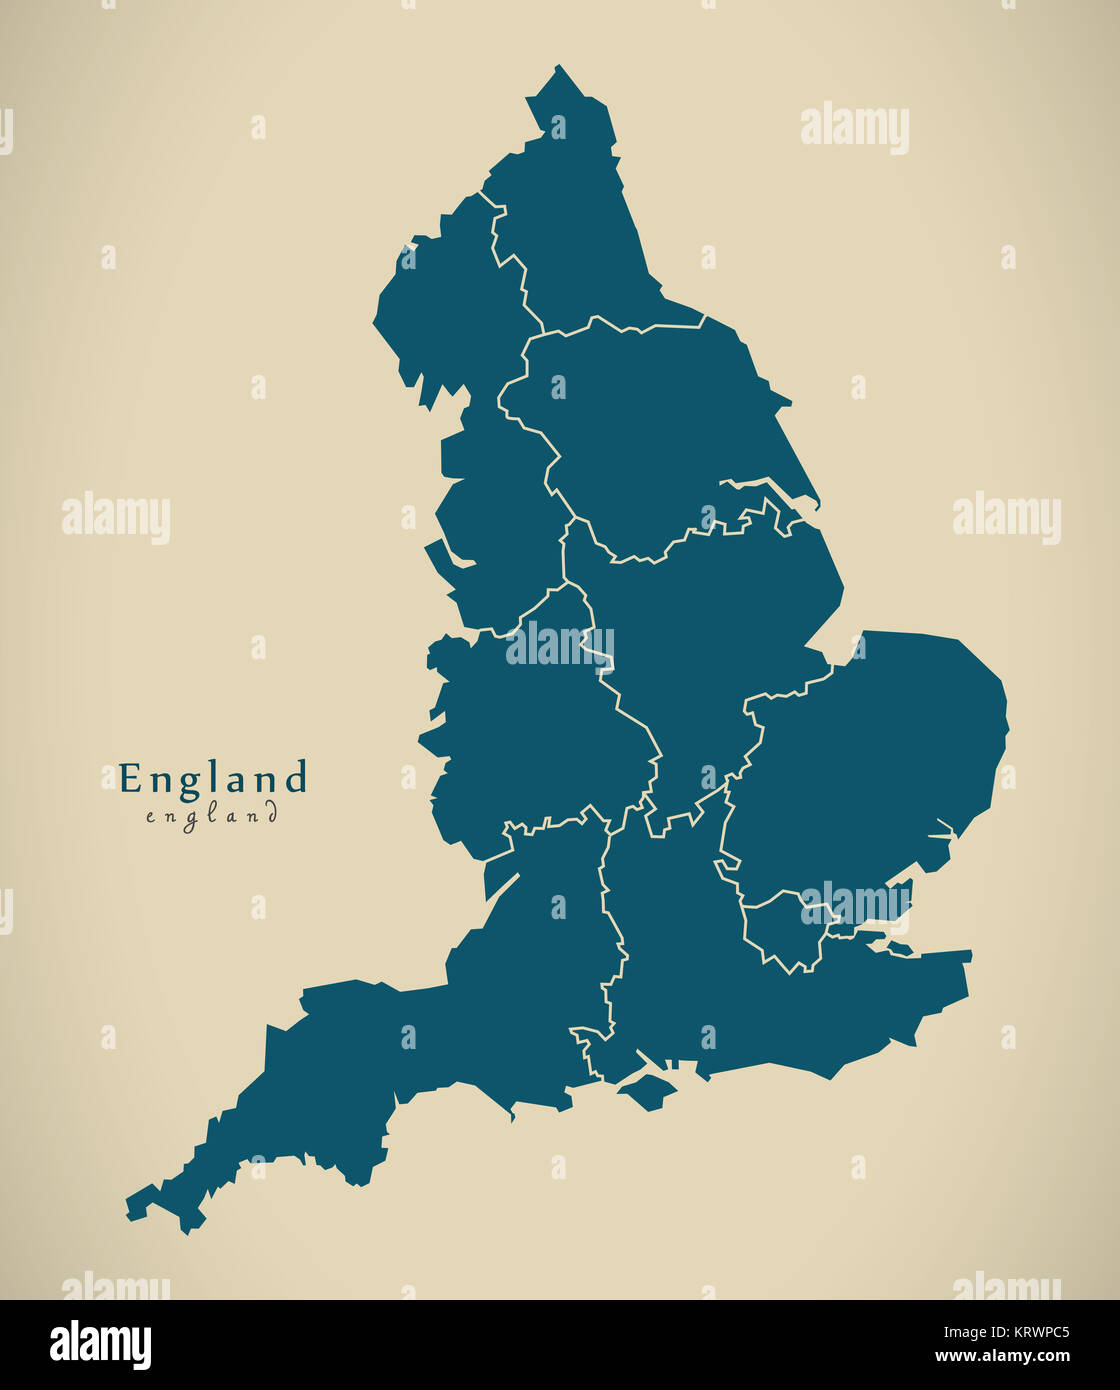 Map Of Counties England.Modern Map England With Counties Uk Illustration Stock Photo